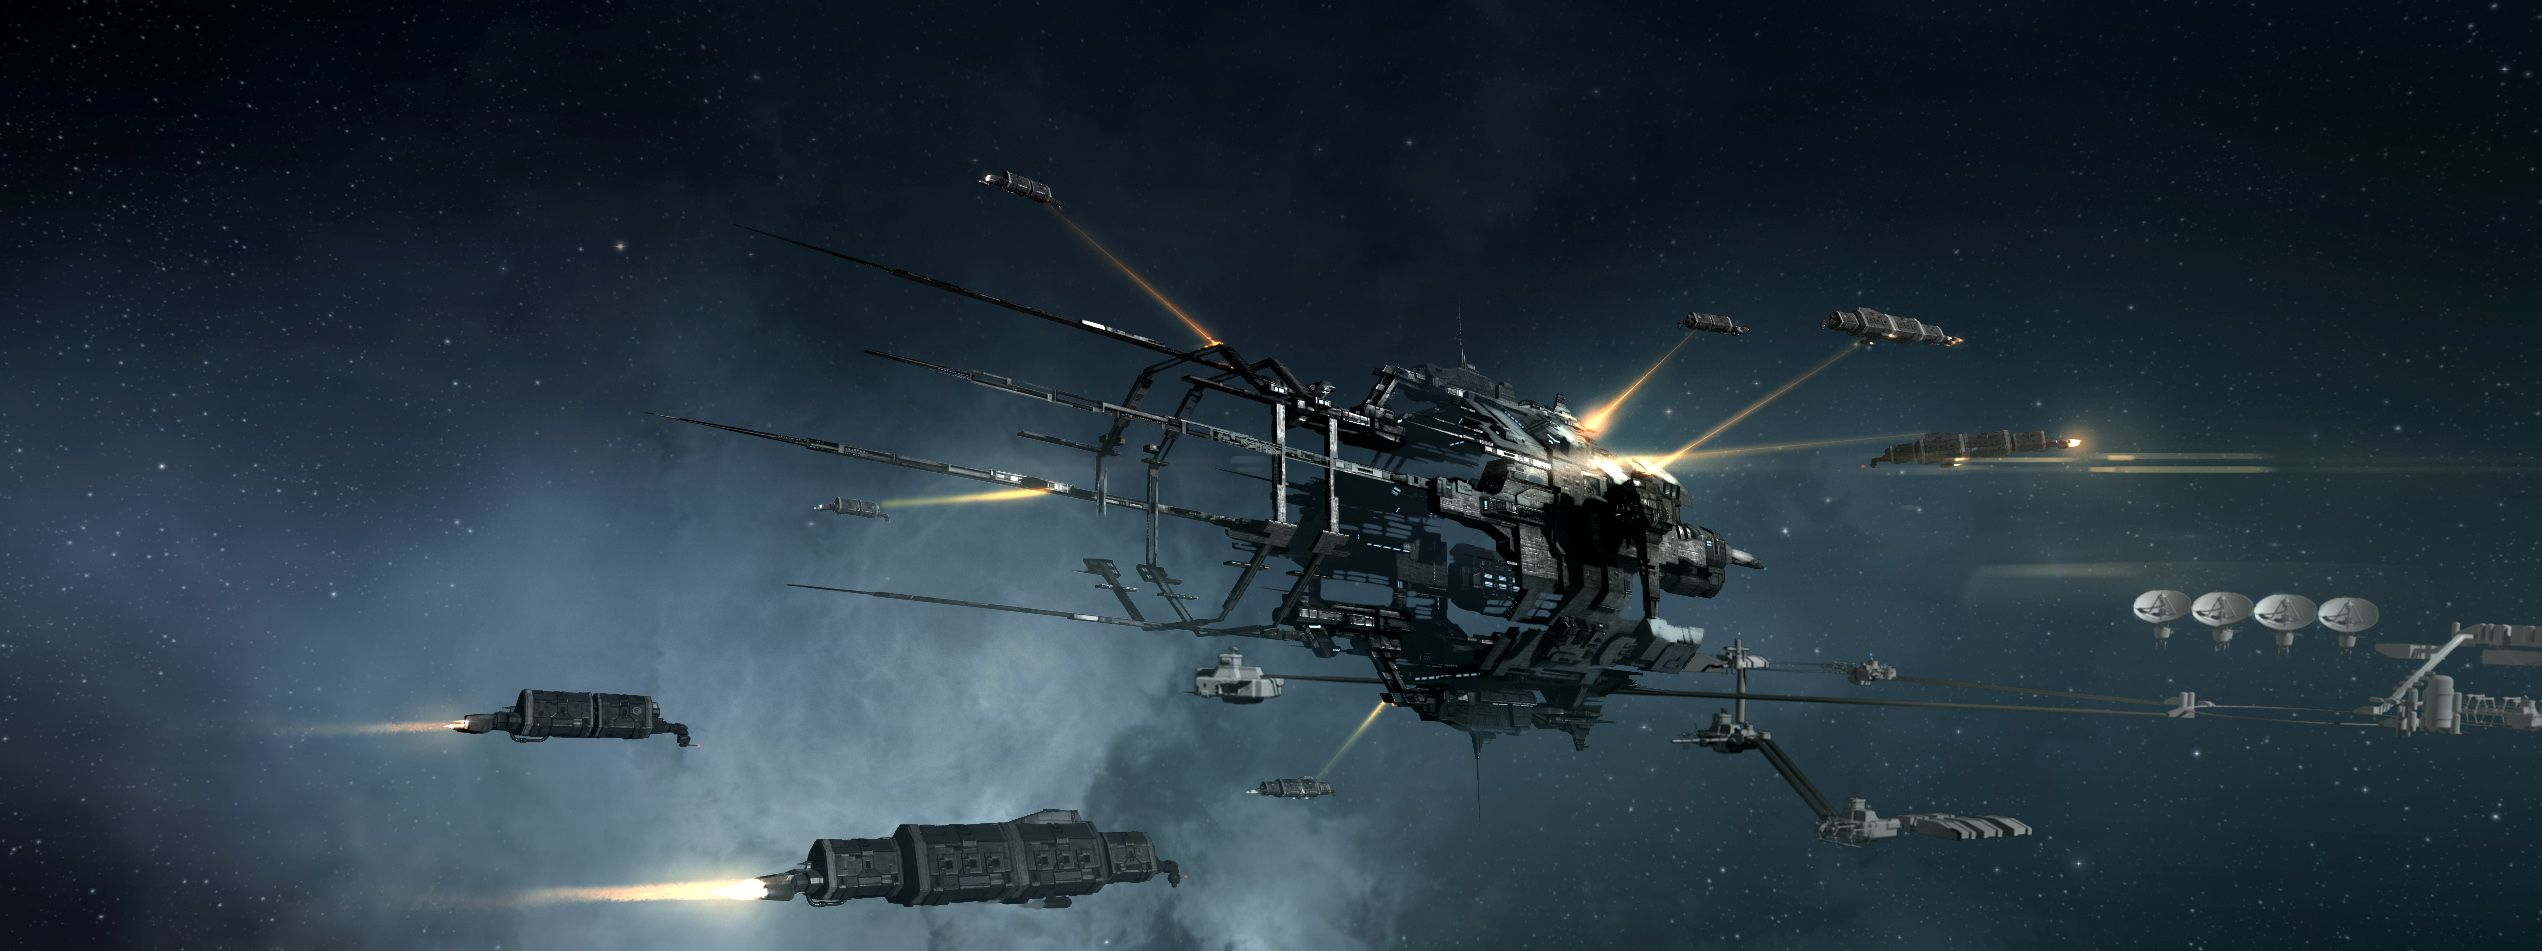 eve online rubicon 27092013 4